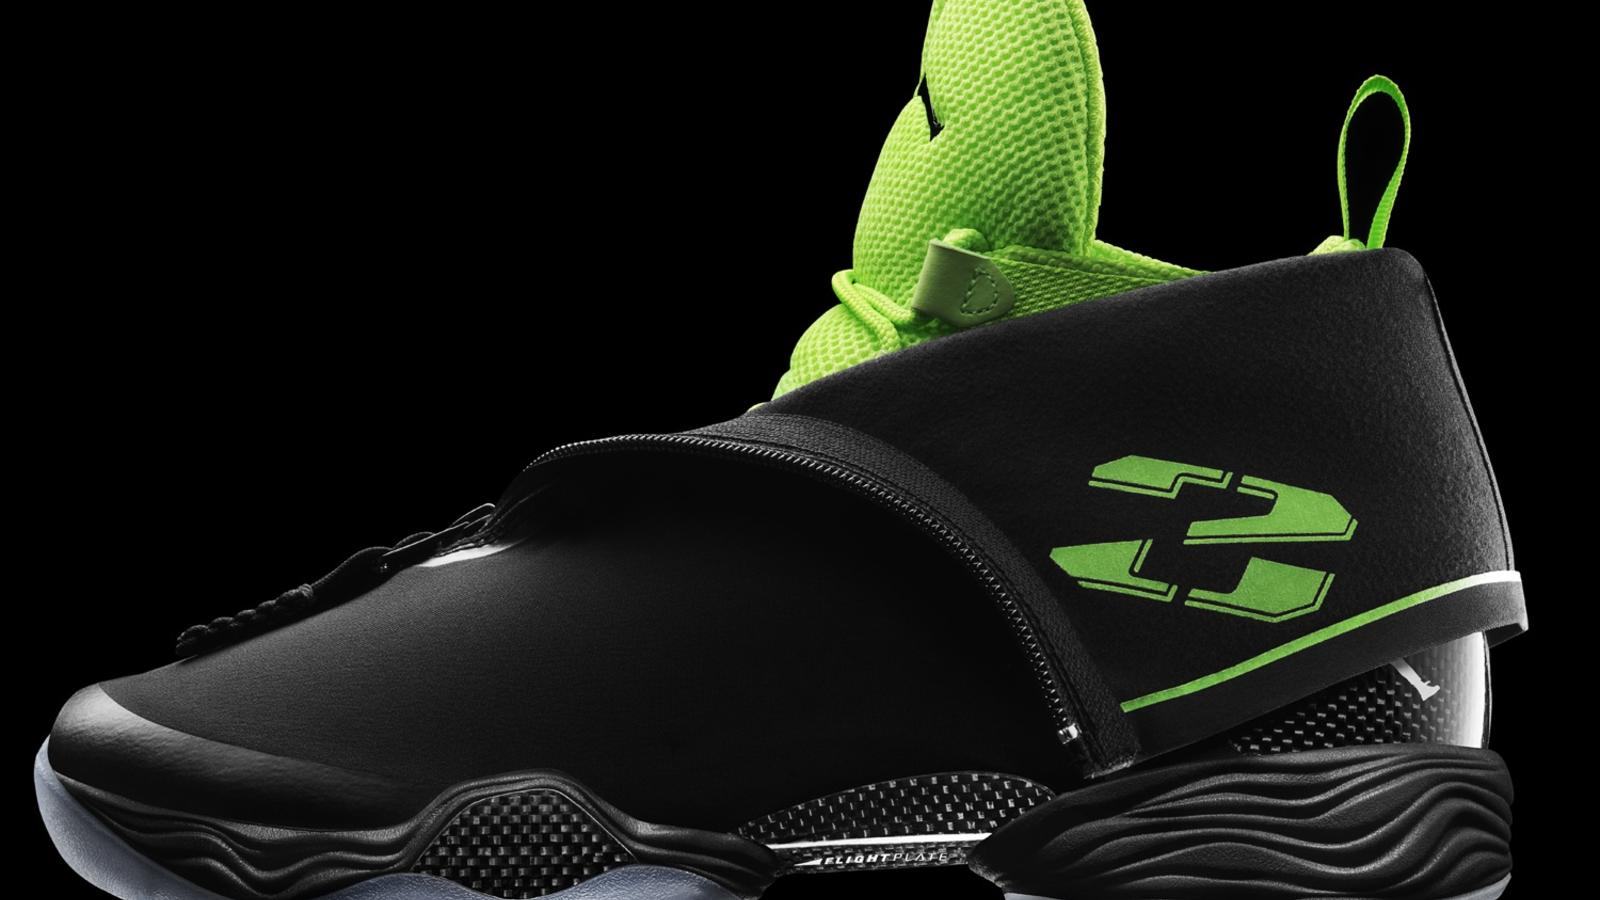 size 40 ce365 450d7 Jordan Brand takes flight with launch of AIR JORDAN XX8 ...